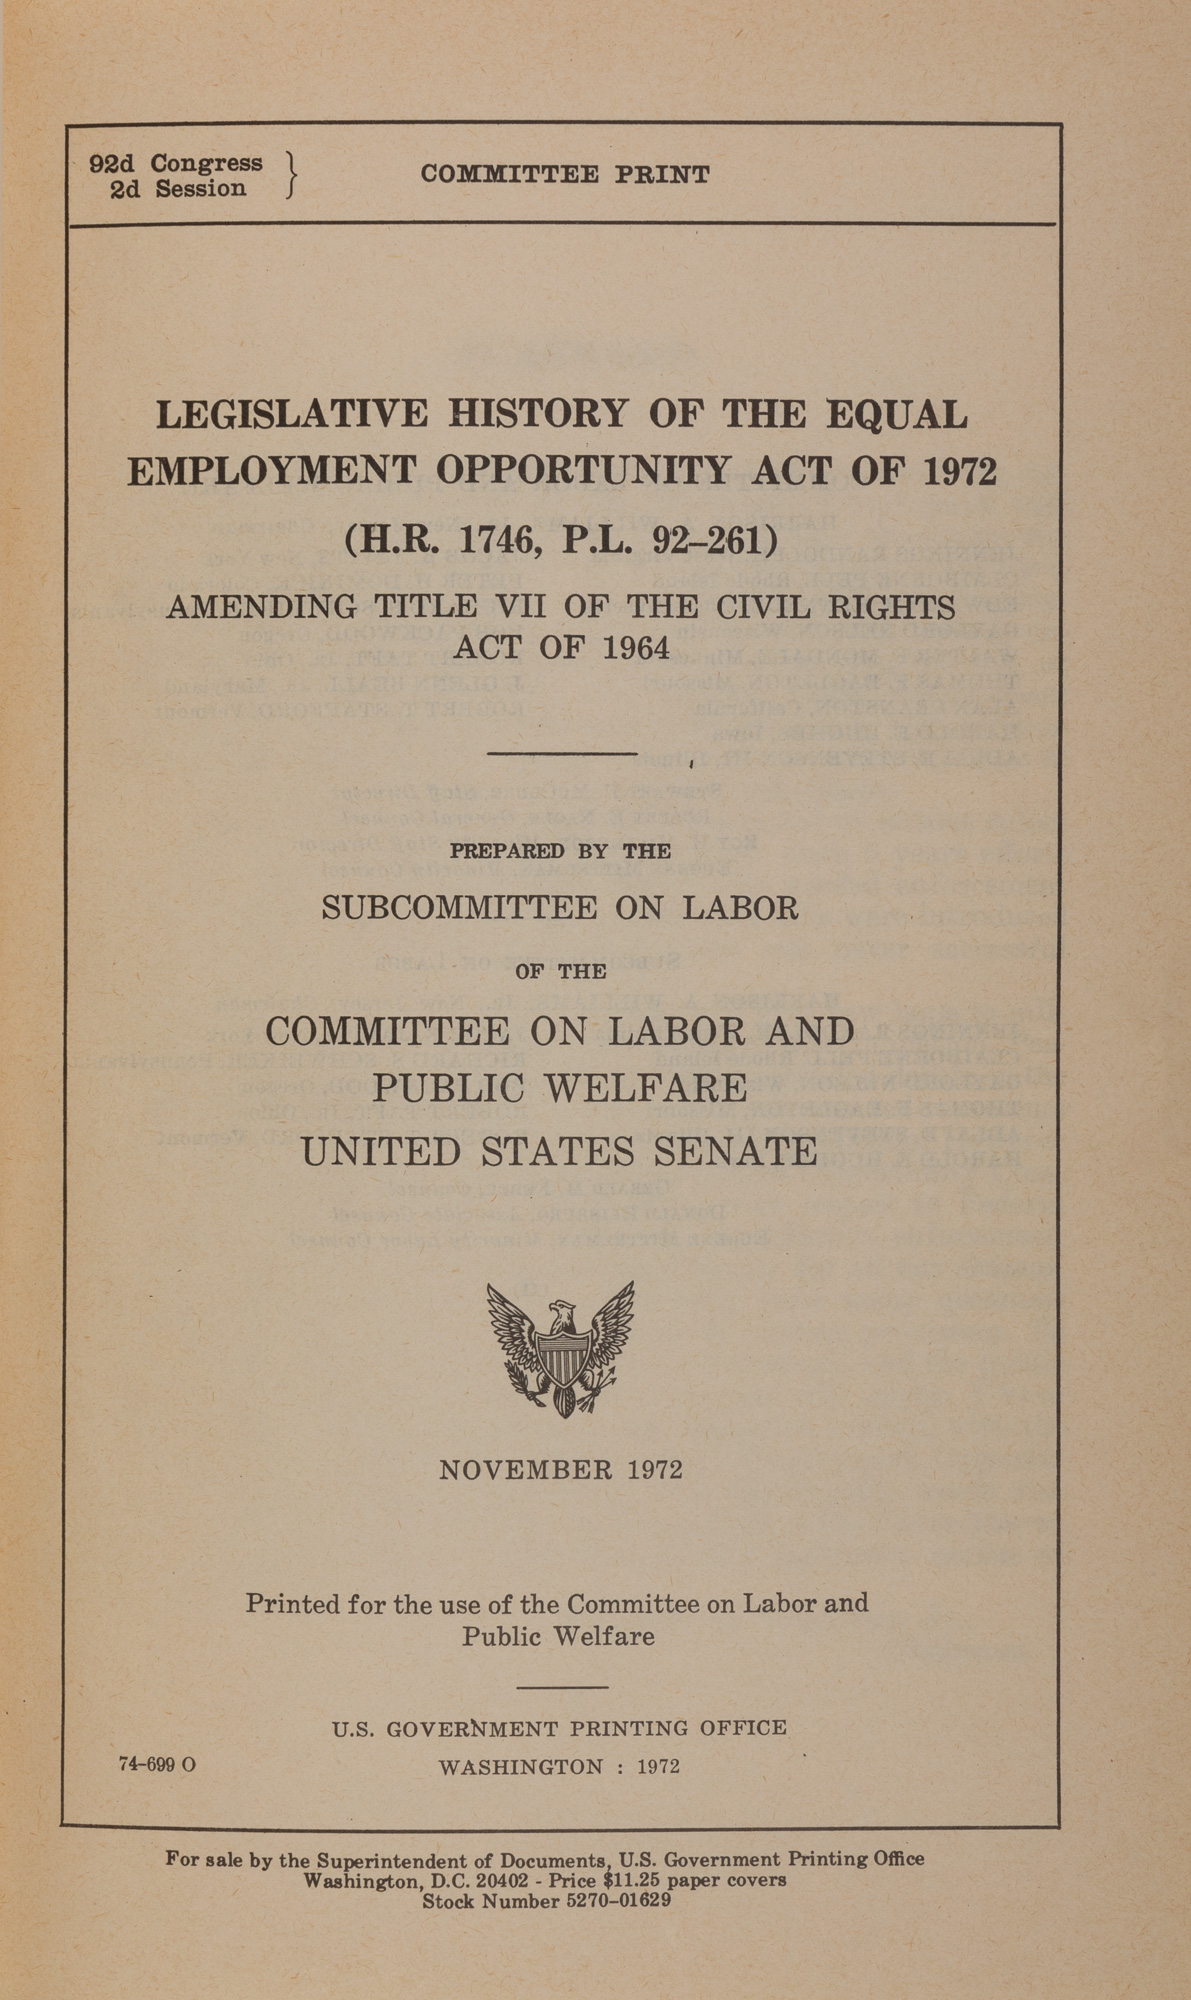 Legislative History of the Equal Employment Opportunity Act of 1972 |  United States Congress. Senate. Committee on Labor